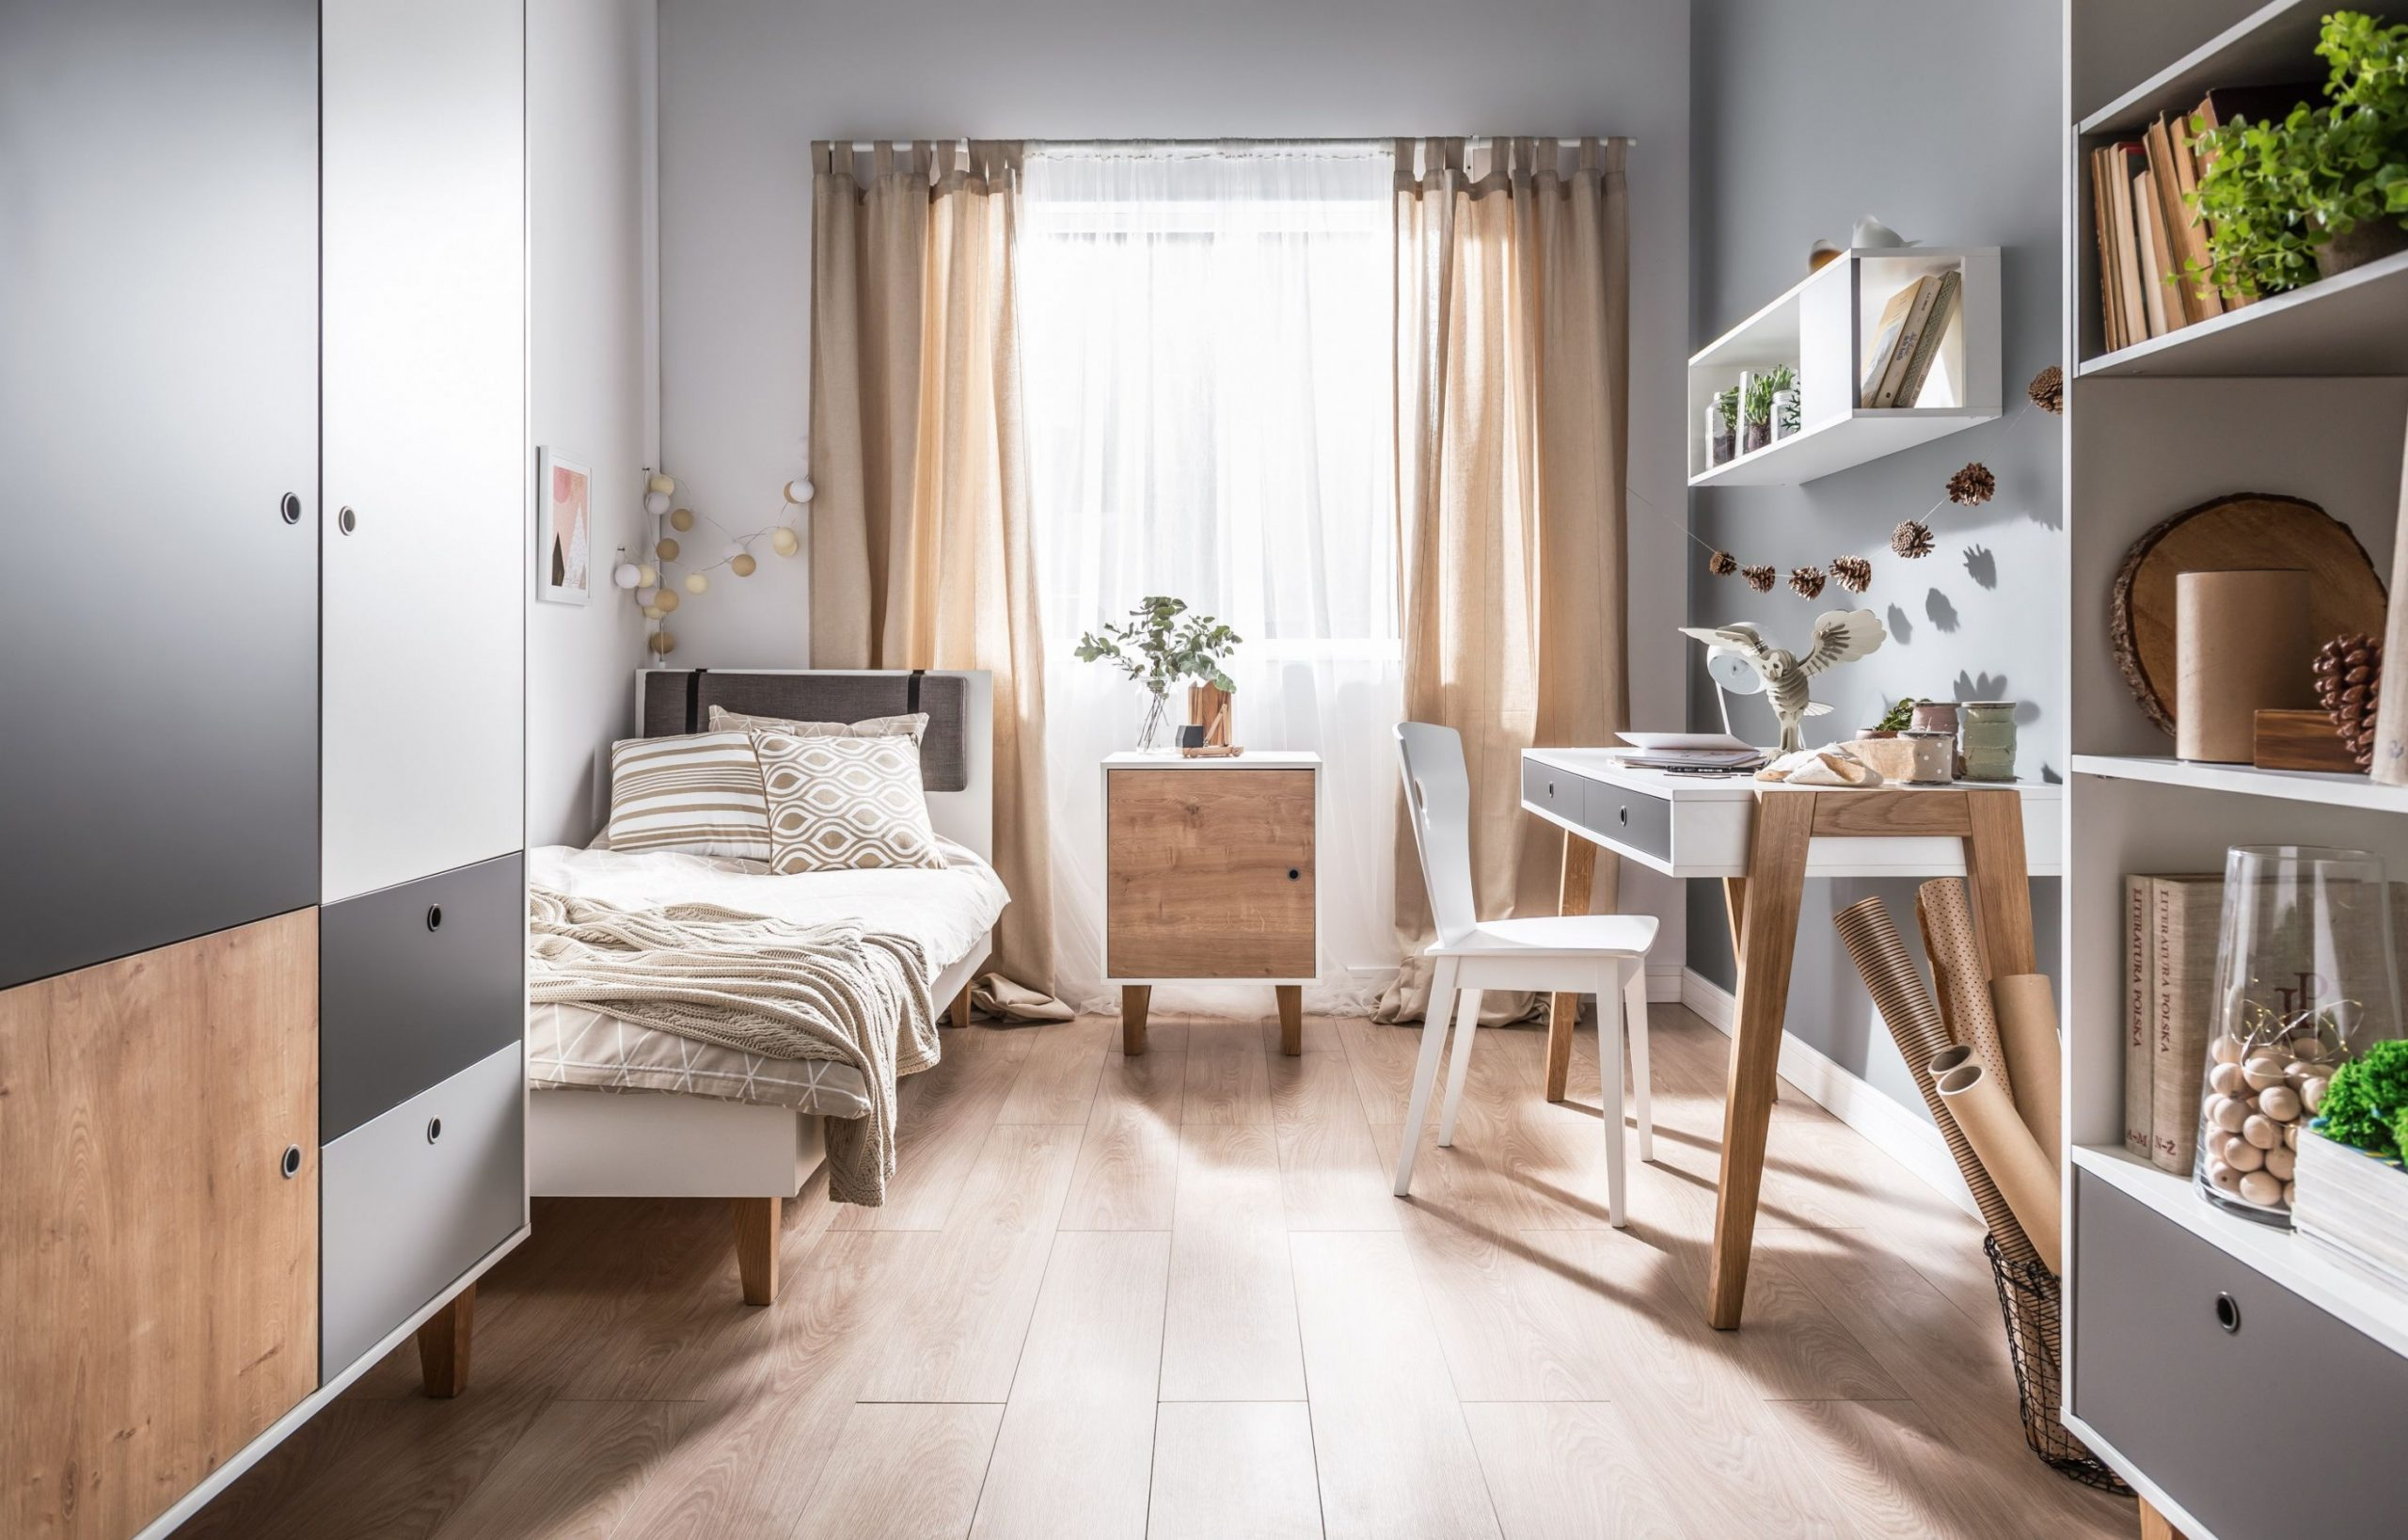 9 Small Bedroom Ideas To Fall In Love With – Small Bedroom  - Bedroom Ideas Small